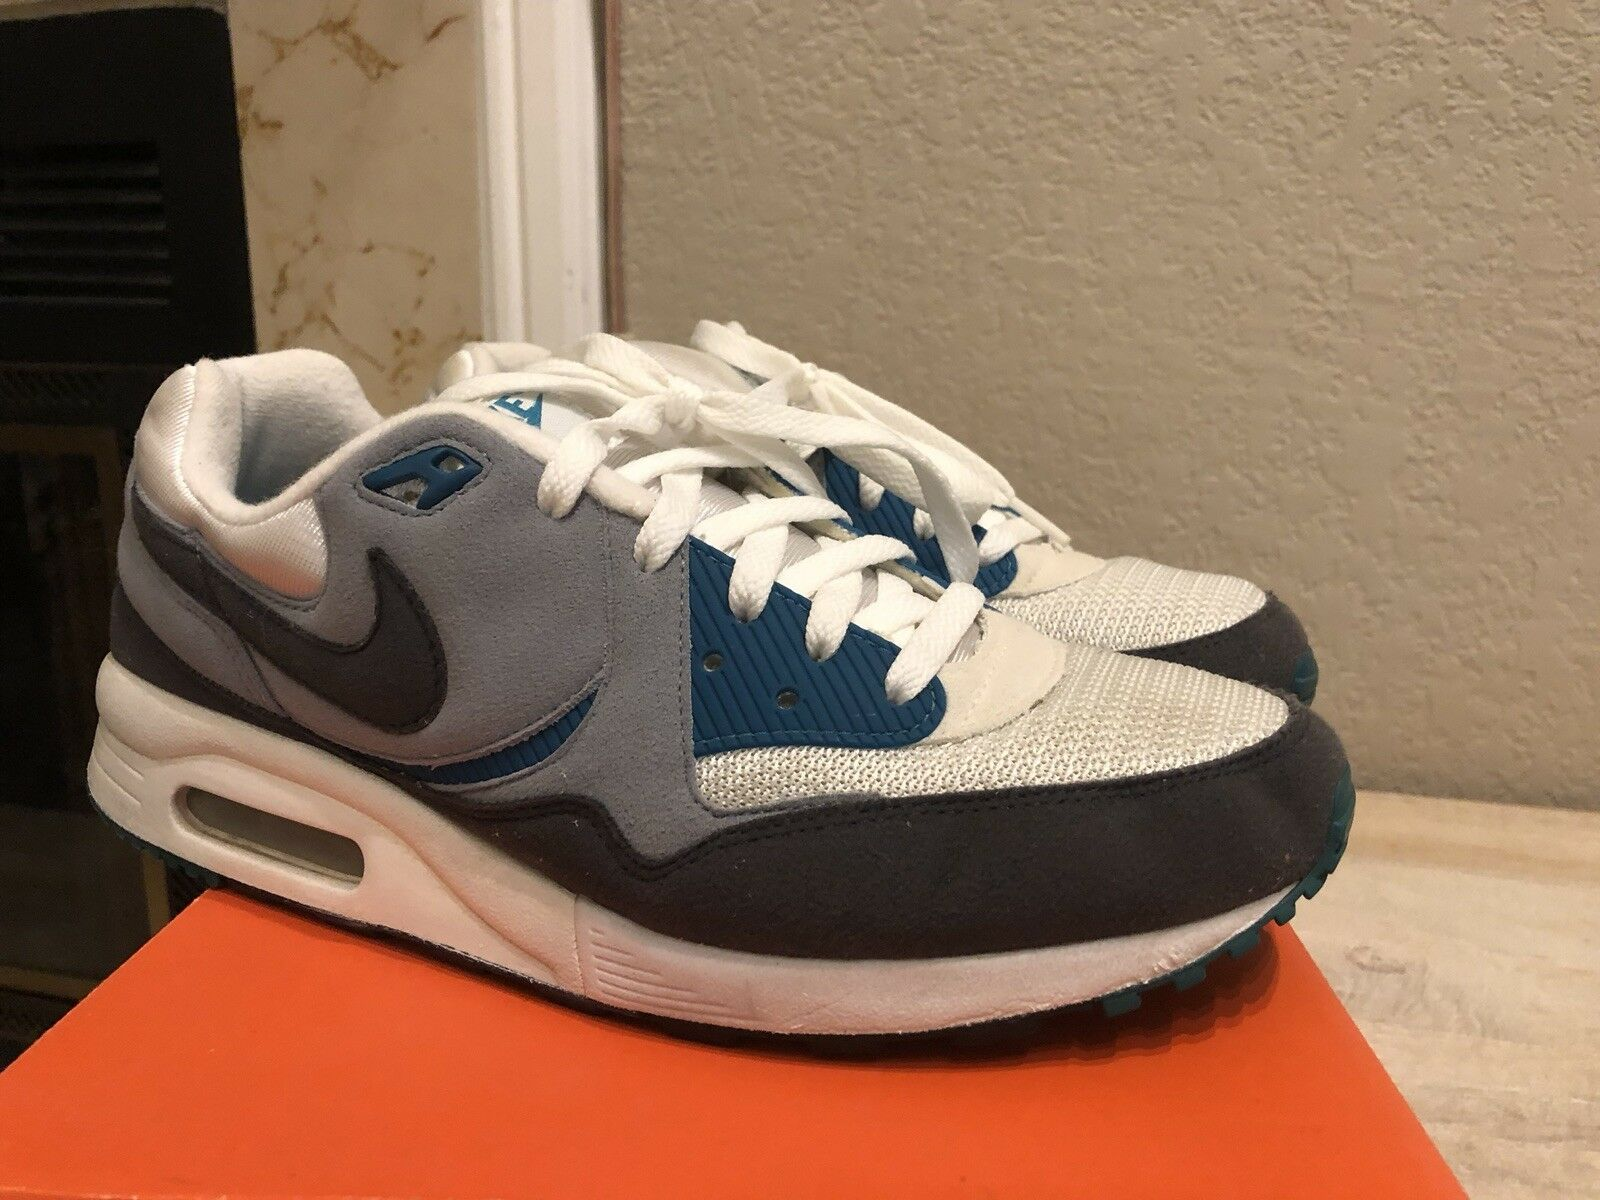 Nike Air Max Light Teal sz 9 Ltd EU exclusive